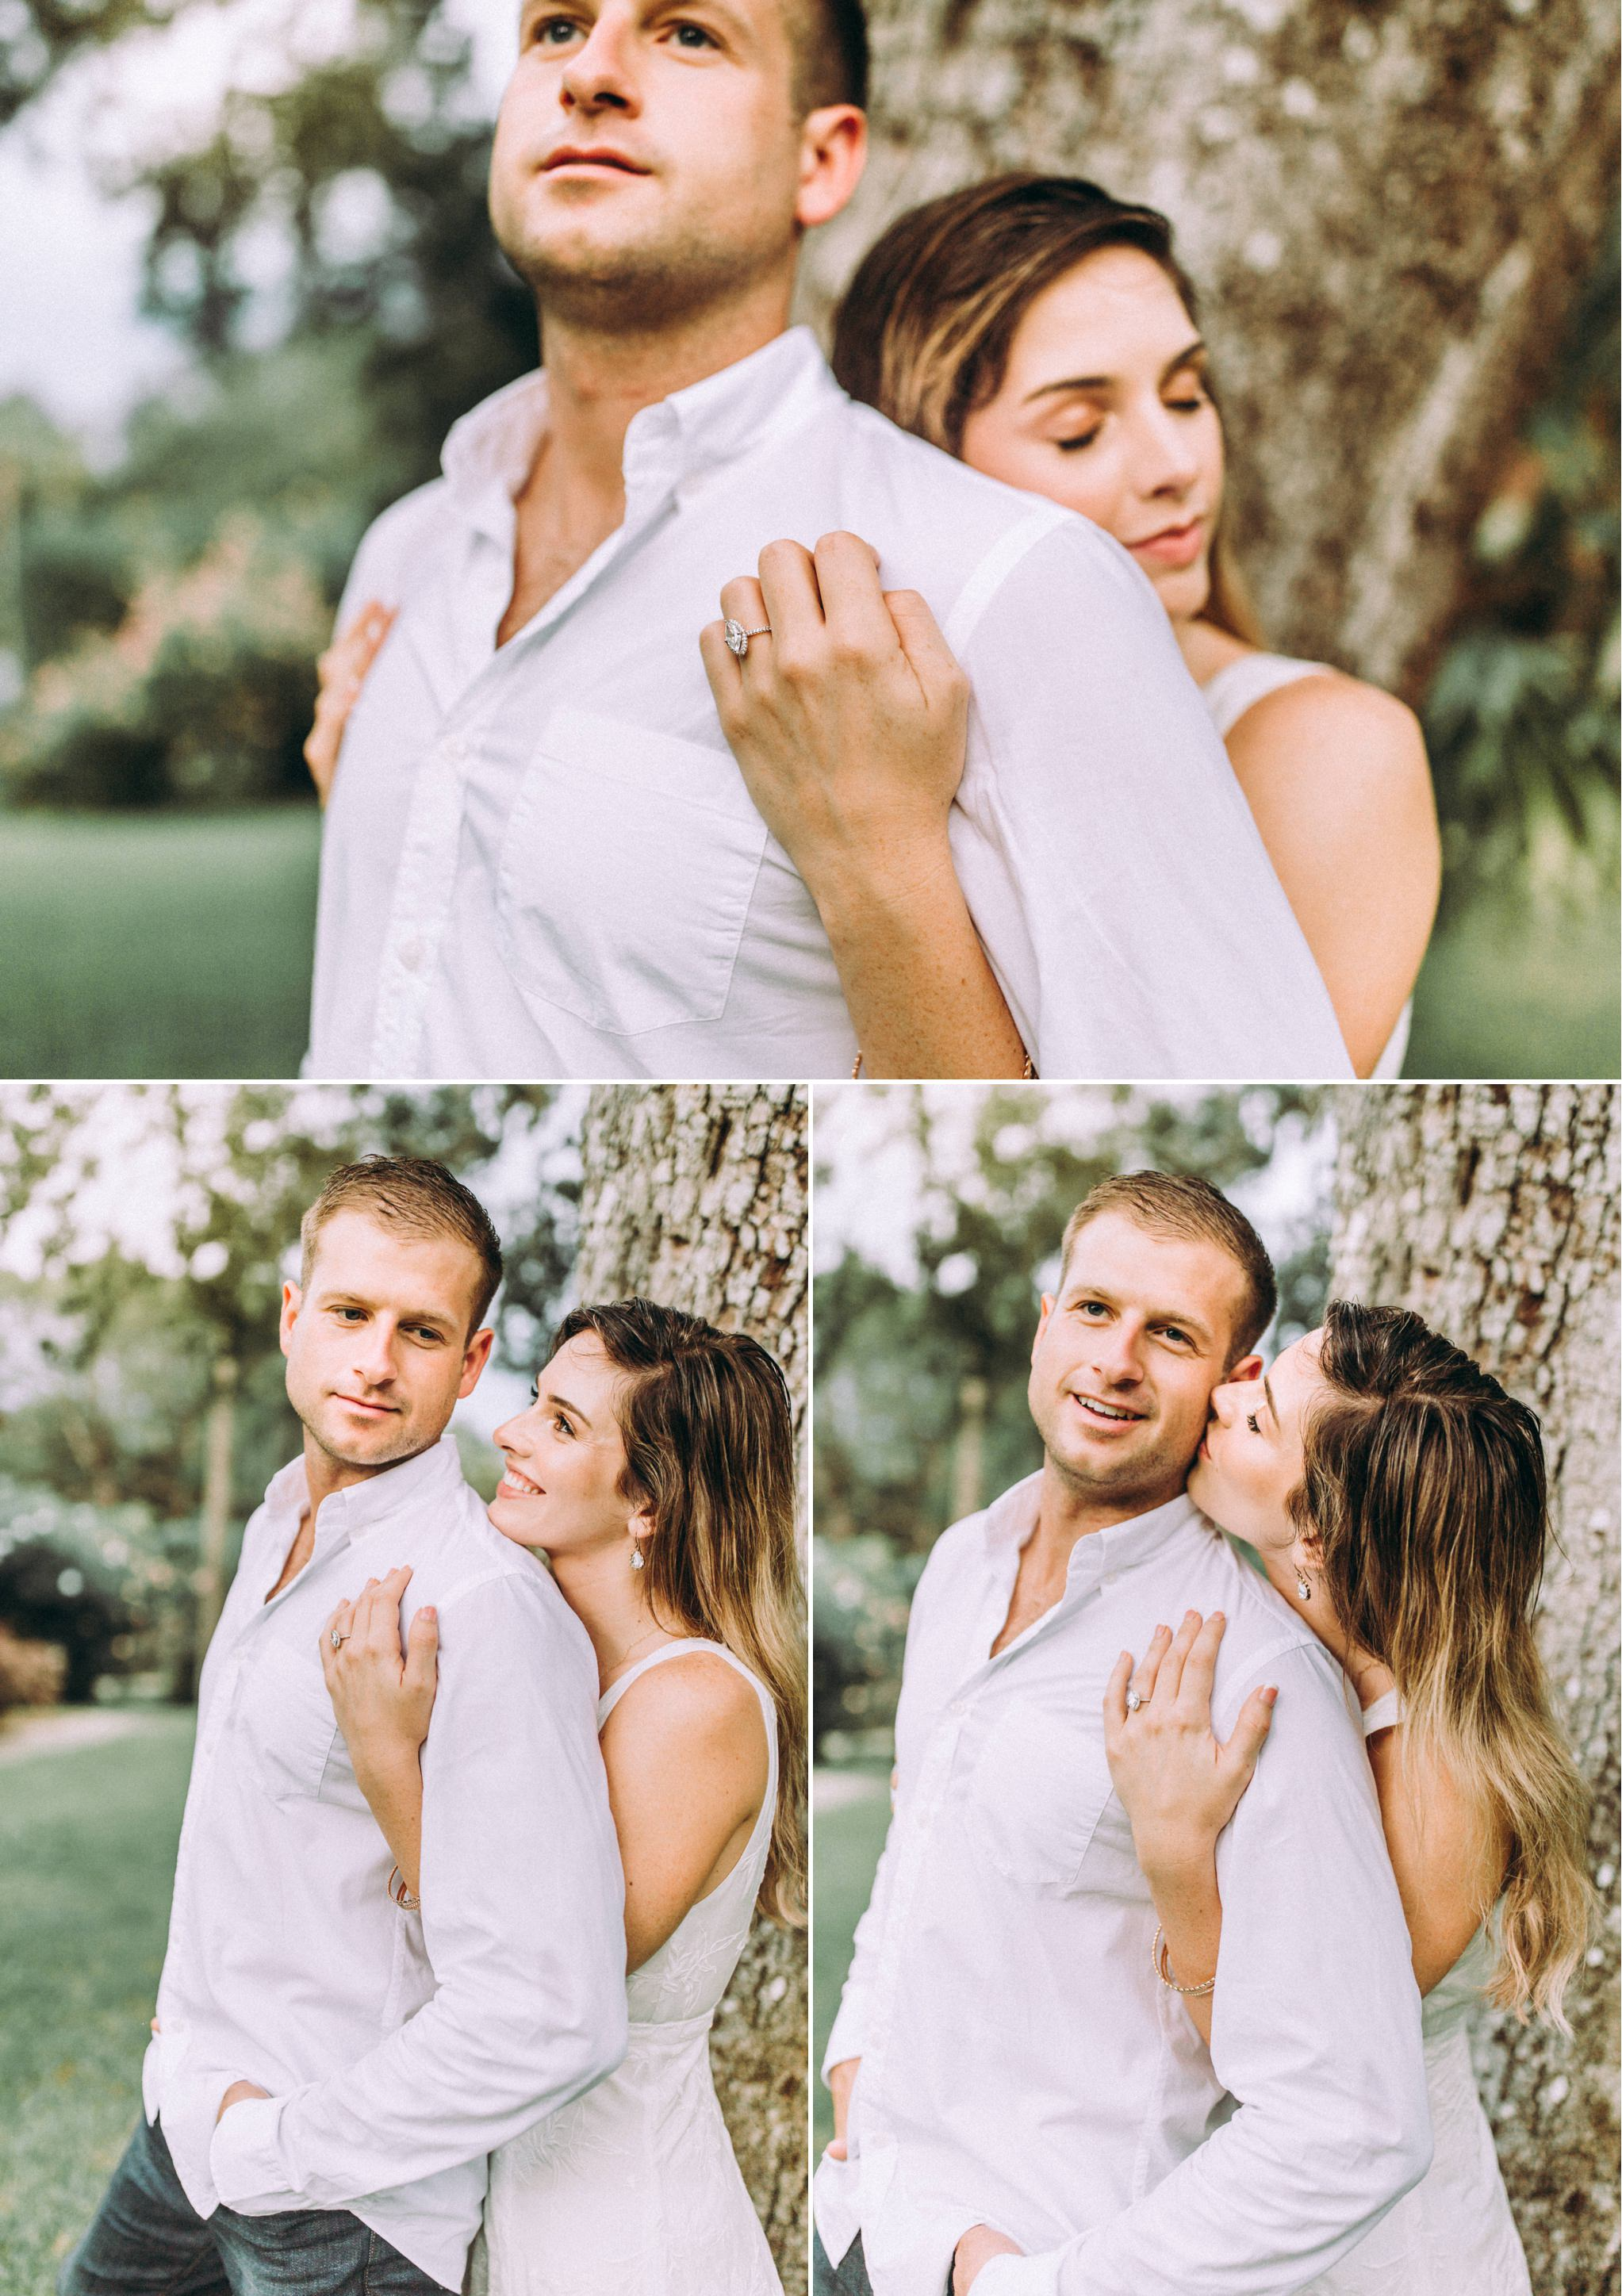 Marquis cut diamond engagement ring and neutral toned outfits at the Washington Oaks Garden State Park.